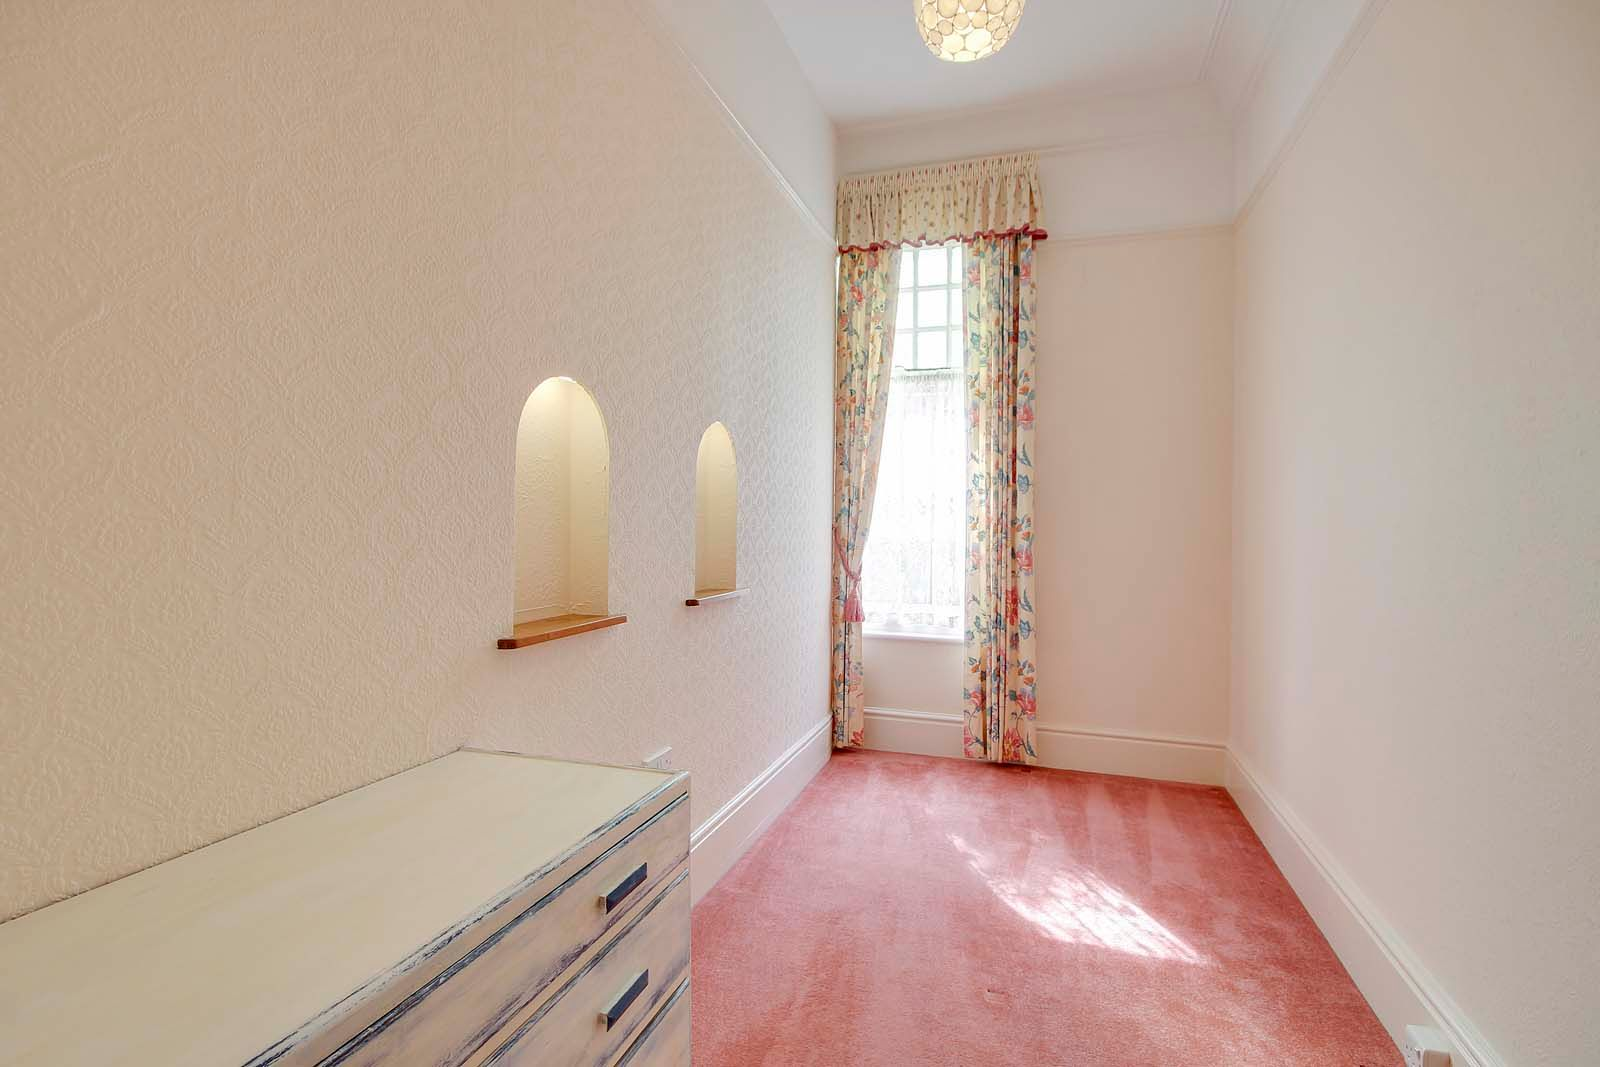 2 bed Apartment to rent in Worthing - Bedroom (Property Image 7)